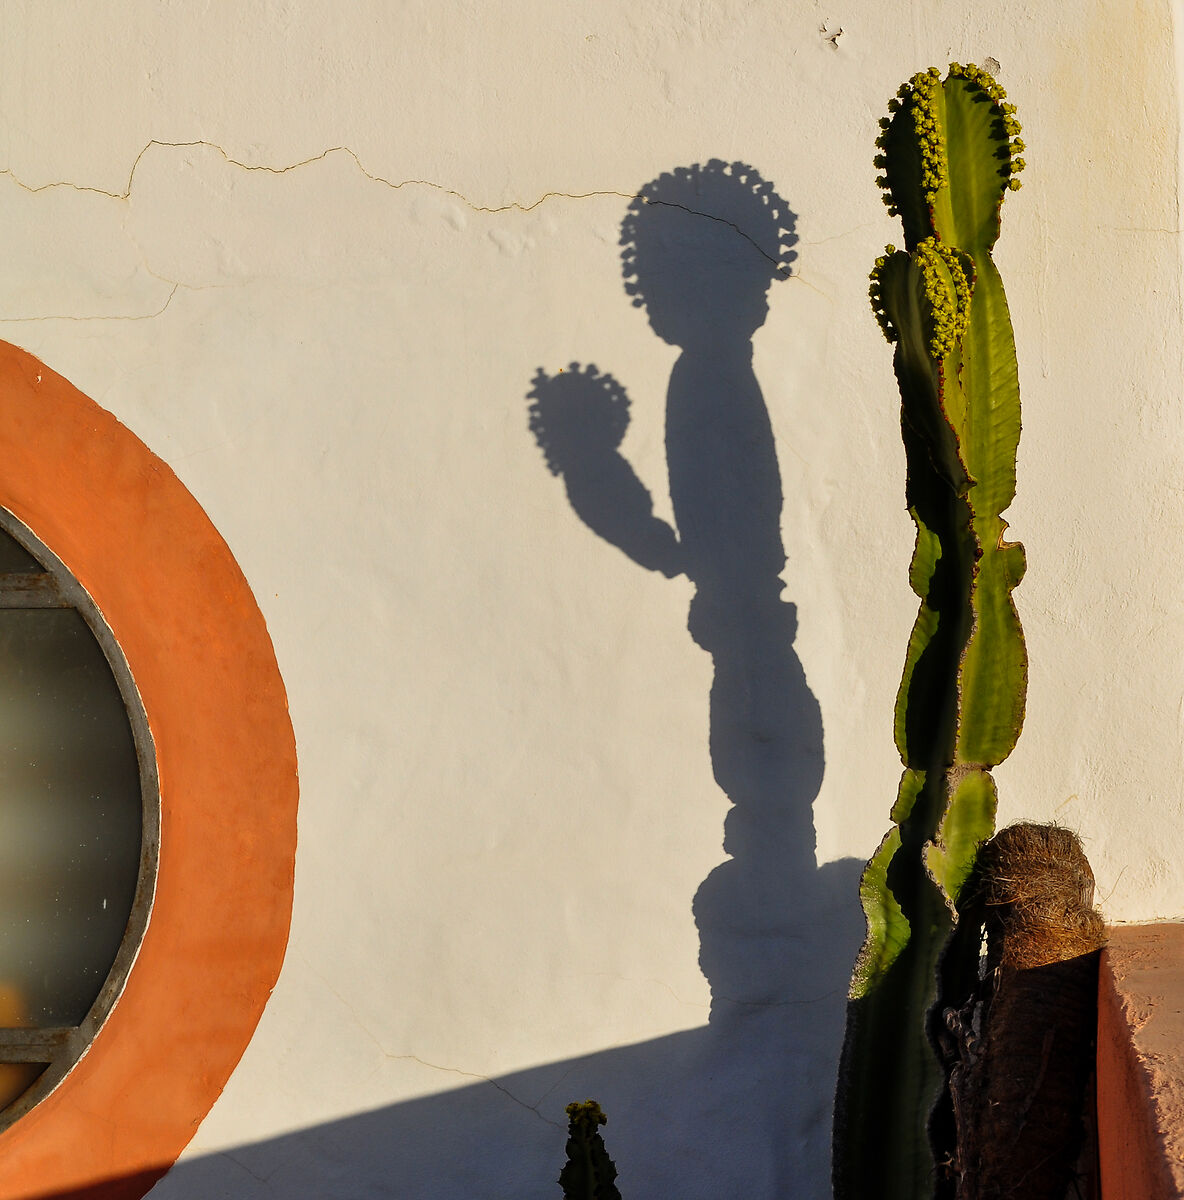 in the shade of the cactus...